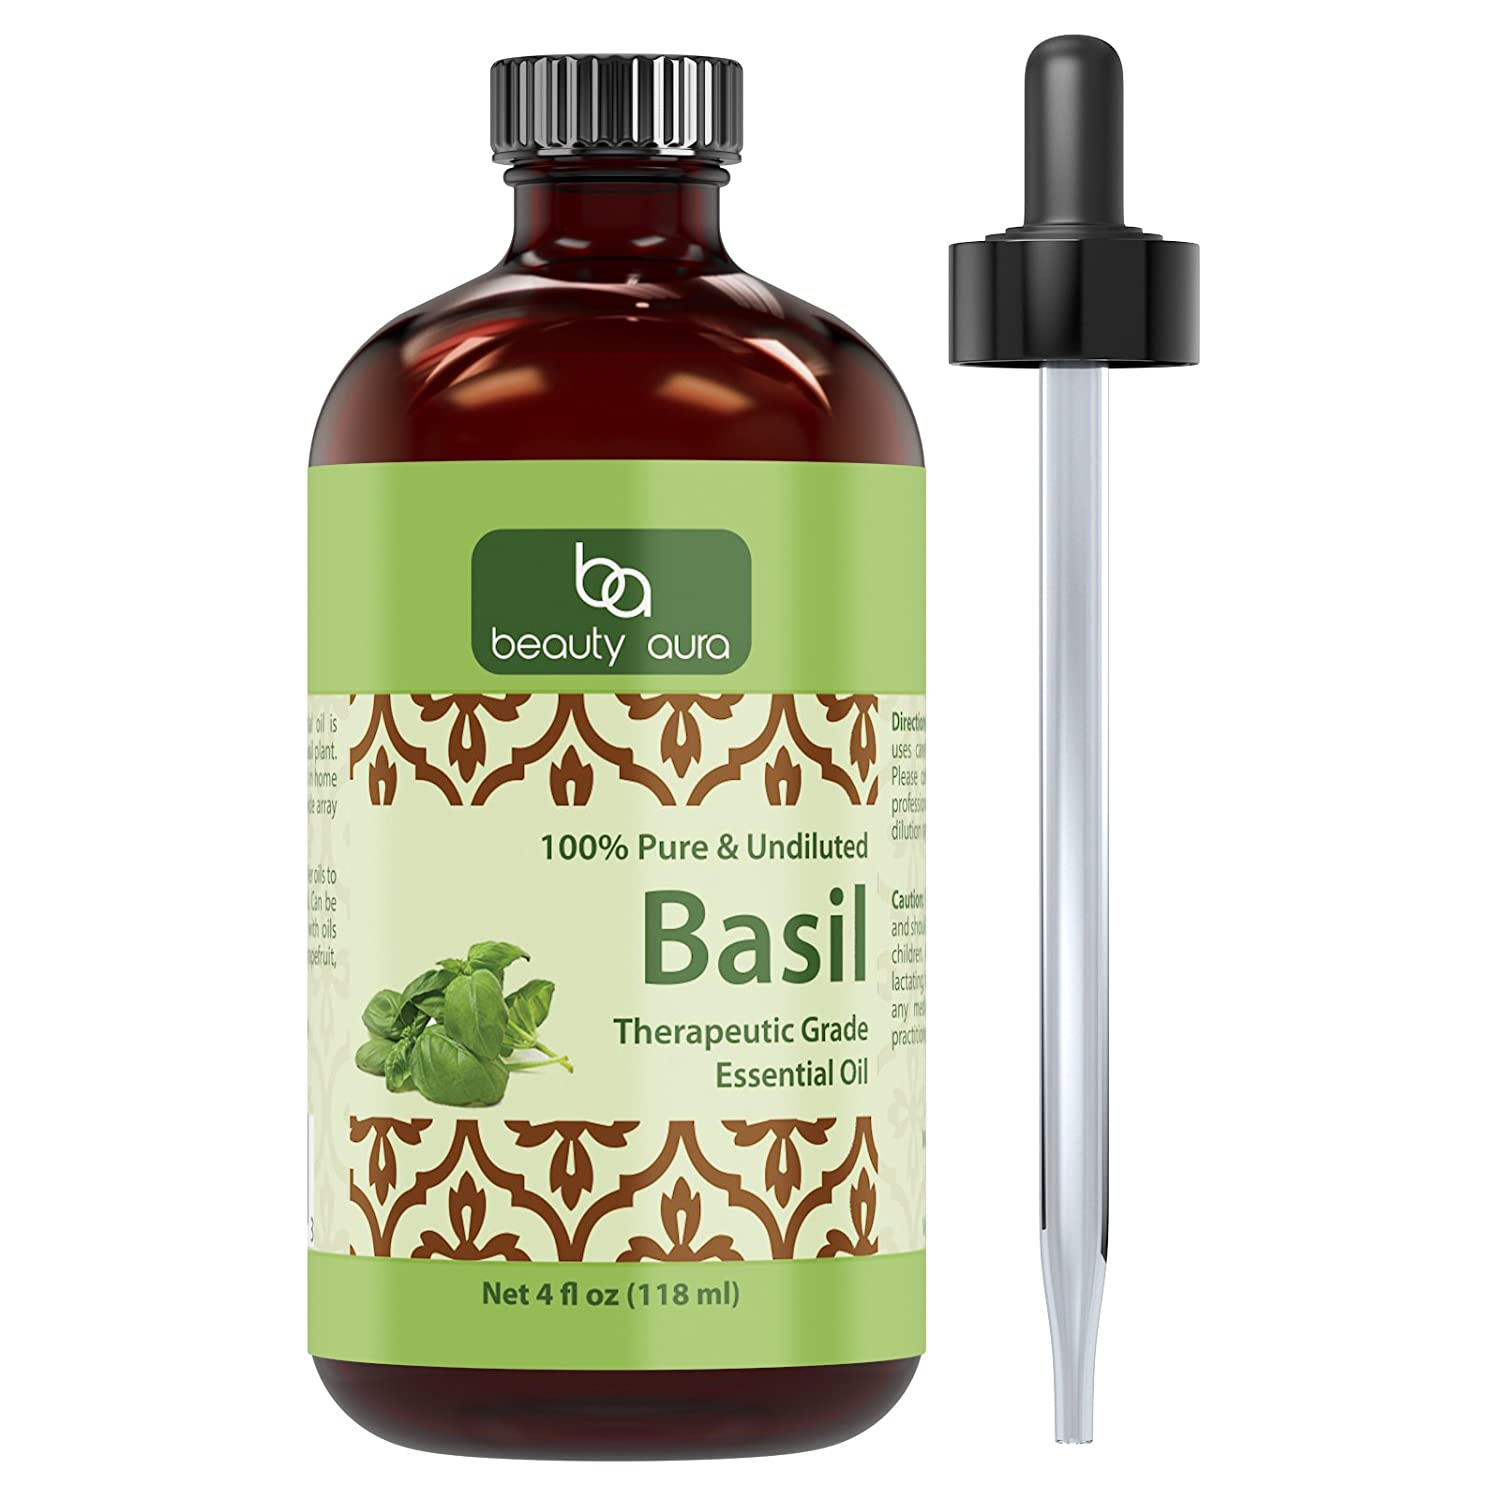 Beauty Aura Essential Oil, Basil (4 Oz) - - Pure Therapeutic Grade Oil - Ideal for Aromatherapy